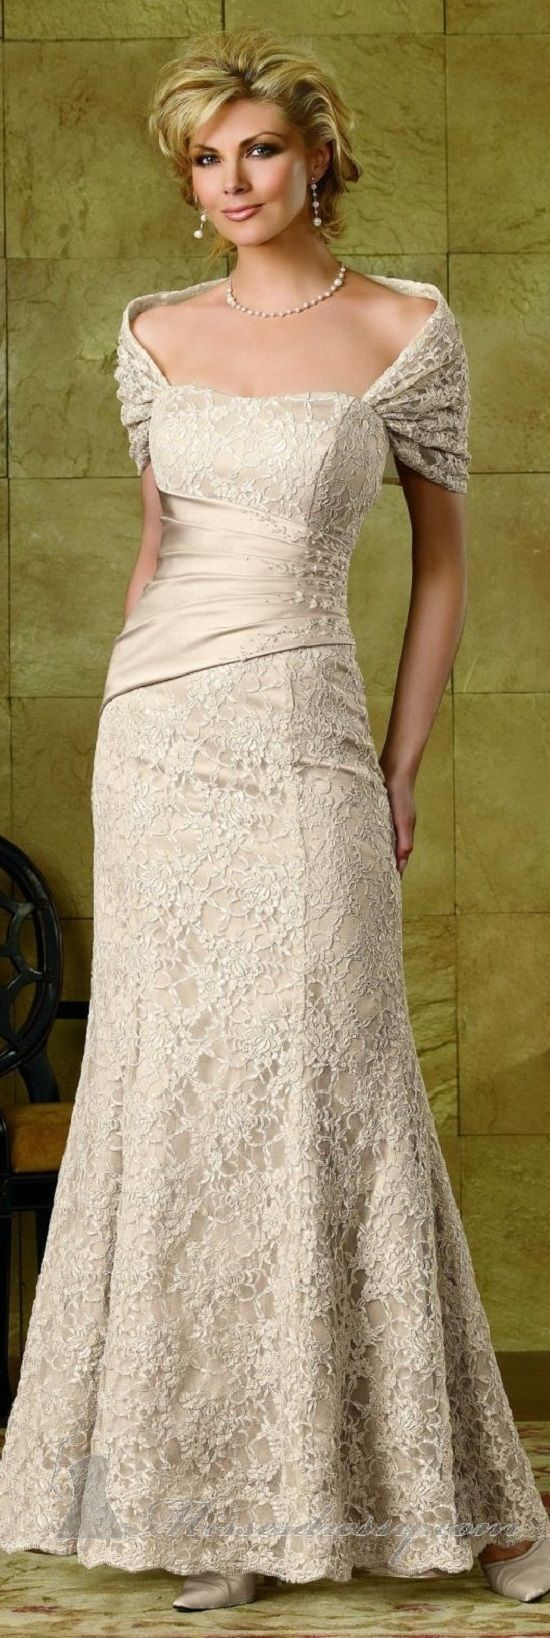 Wedding Dresses for 50 Year Old Brides - Best Dresses for Wedding ...